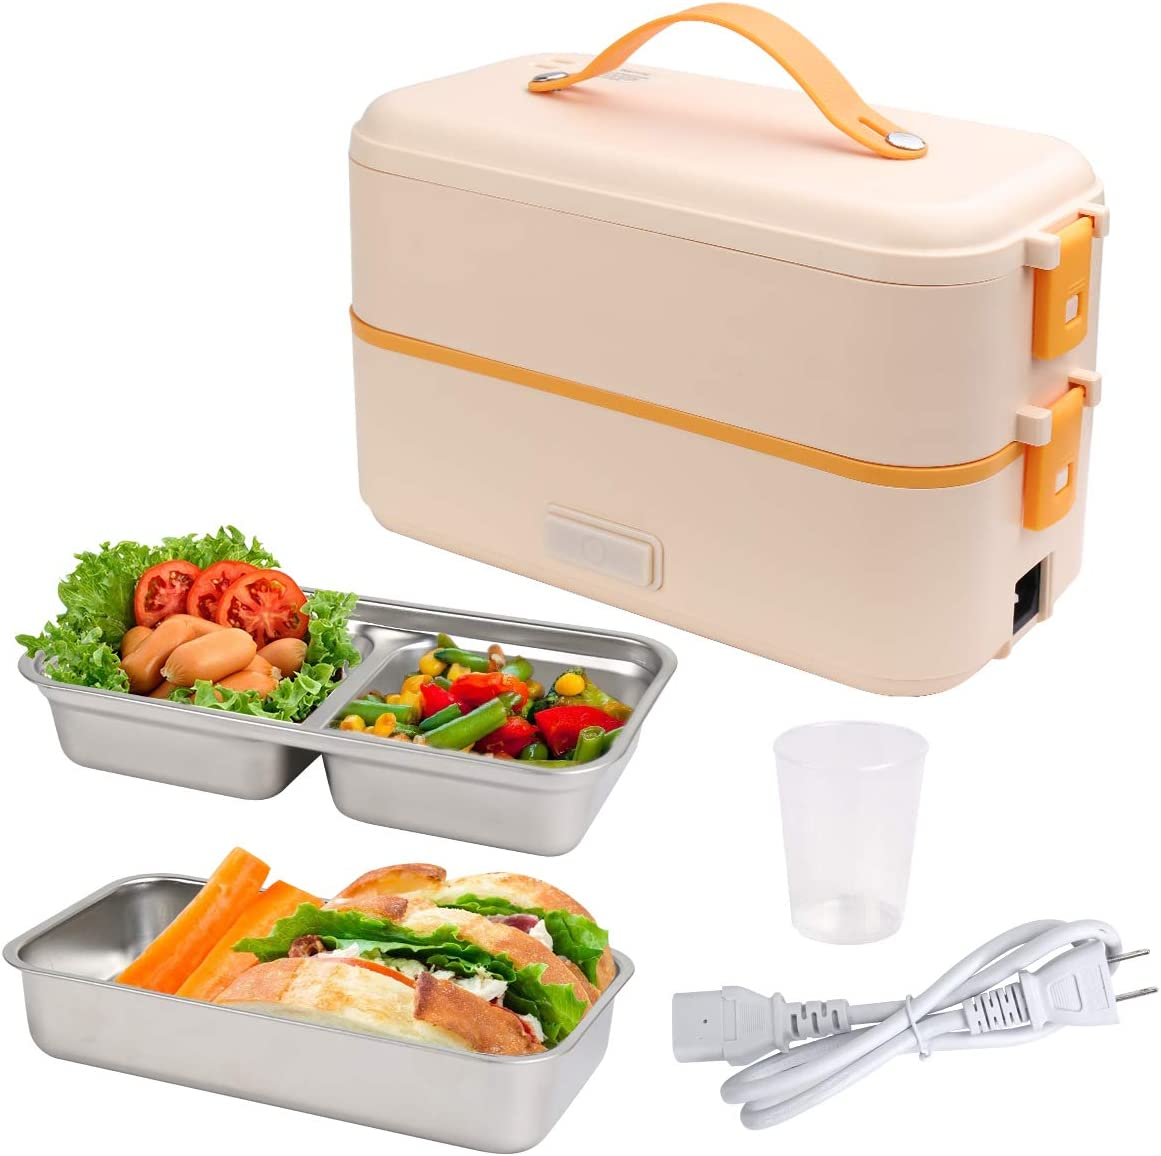 VAlinks Electric Lunch Box, Portable Electric Food Warmer Heater Lunch Box, 2 Layers Steamer Lunch Box for Home Office School Travel Camping - 800ML/110V (Yellow)